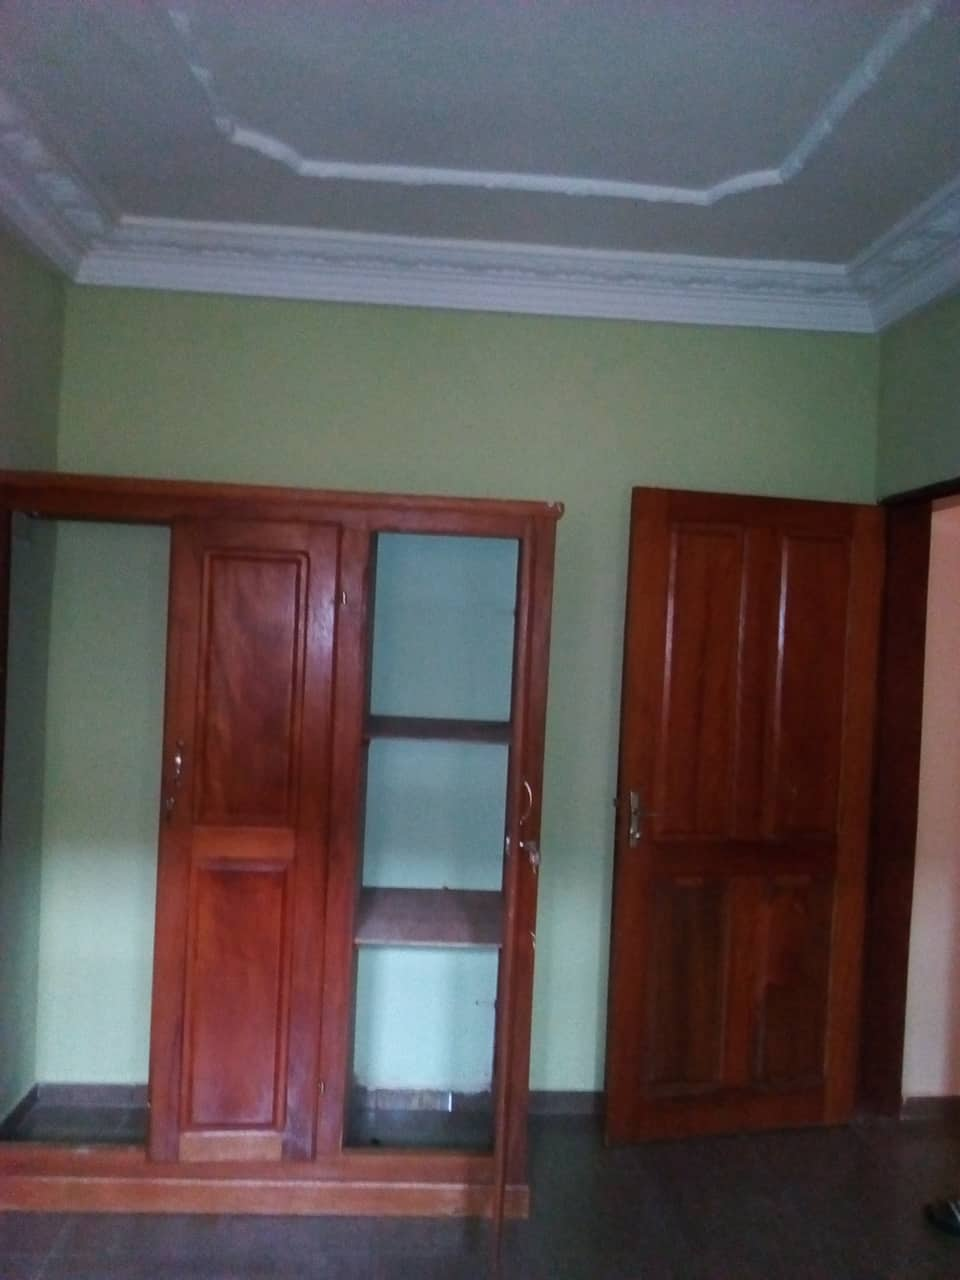 Apartment to rent - Yaoundé, Mfandena, cave - 1 living room(s), 2 bedroom(s), 2 bathroom(s) - 250 000 FCFA / month